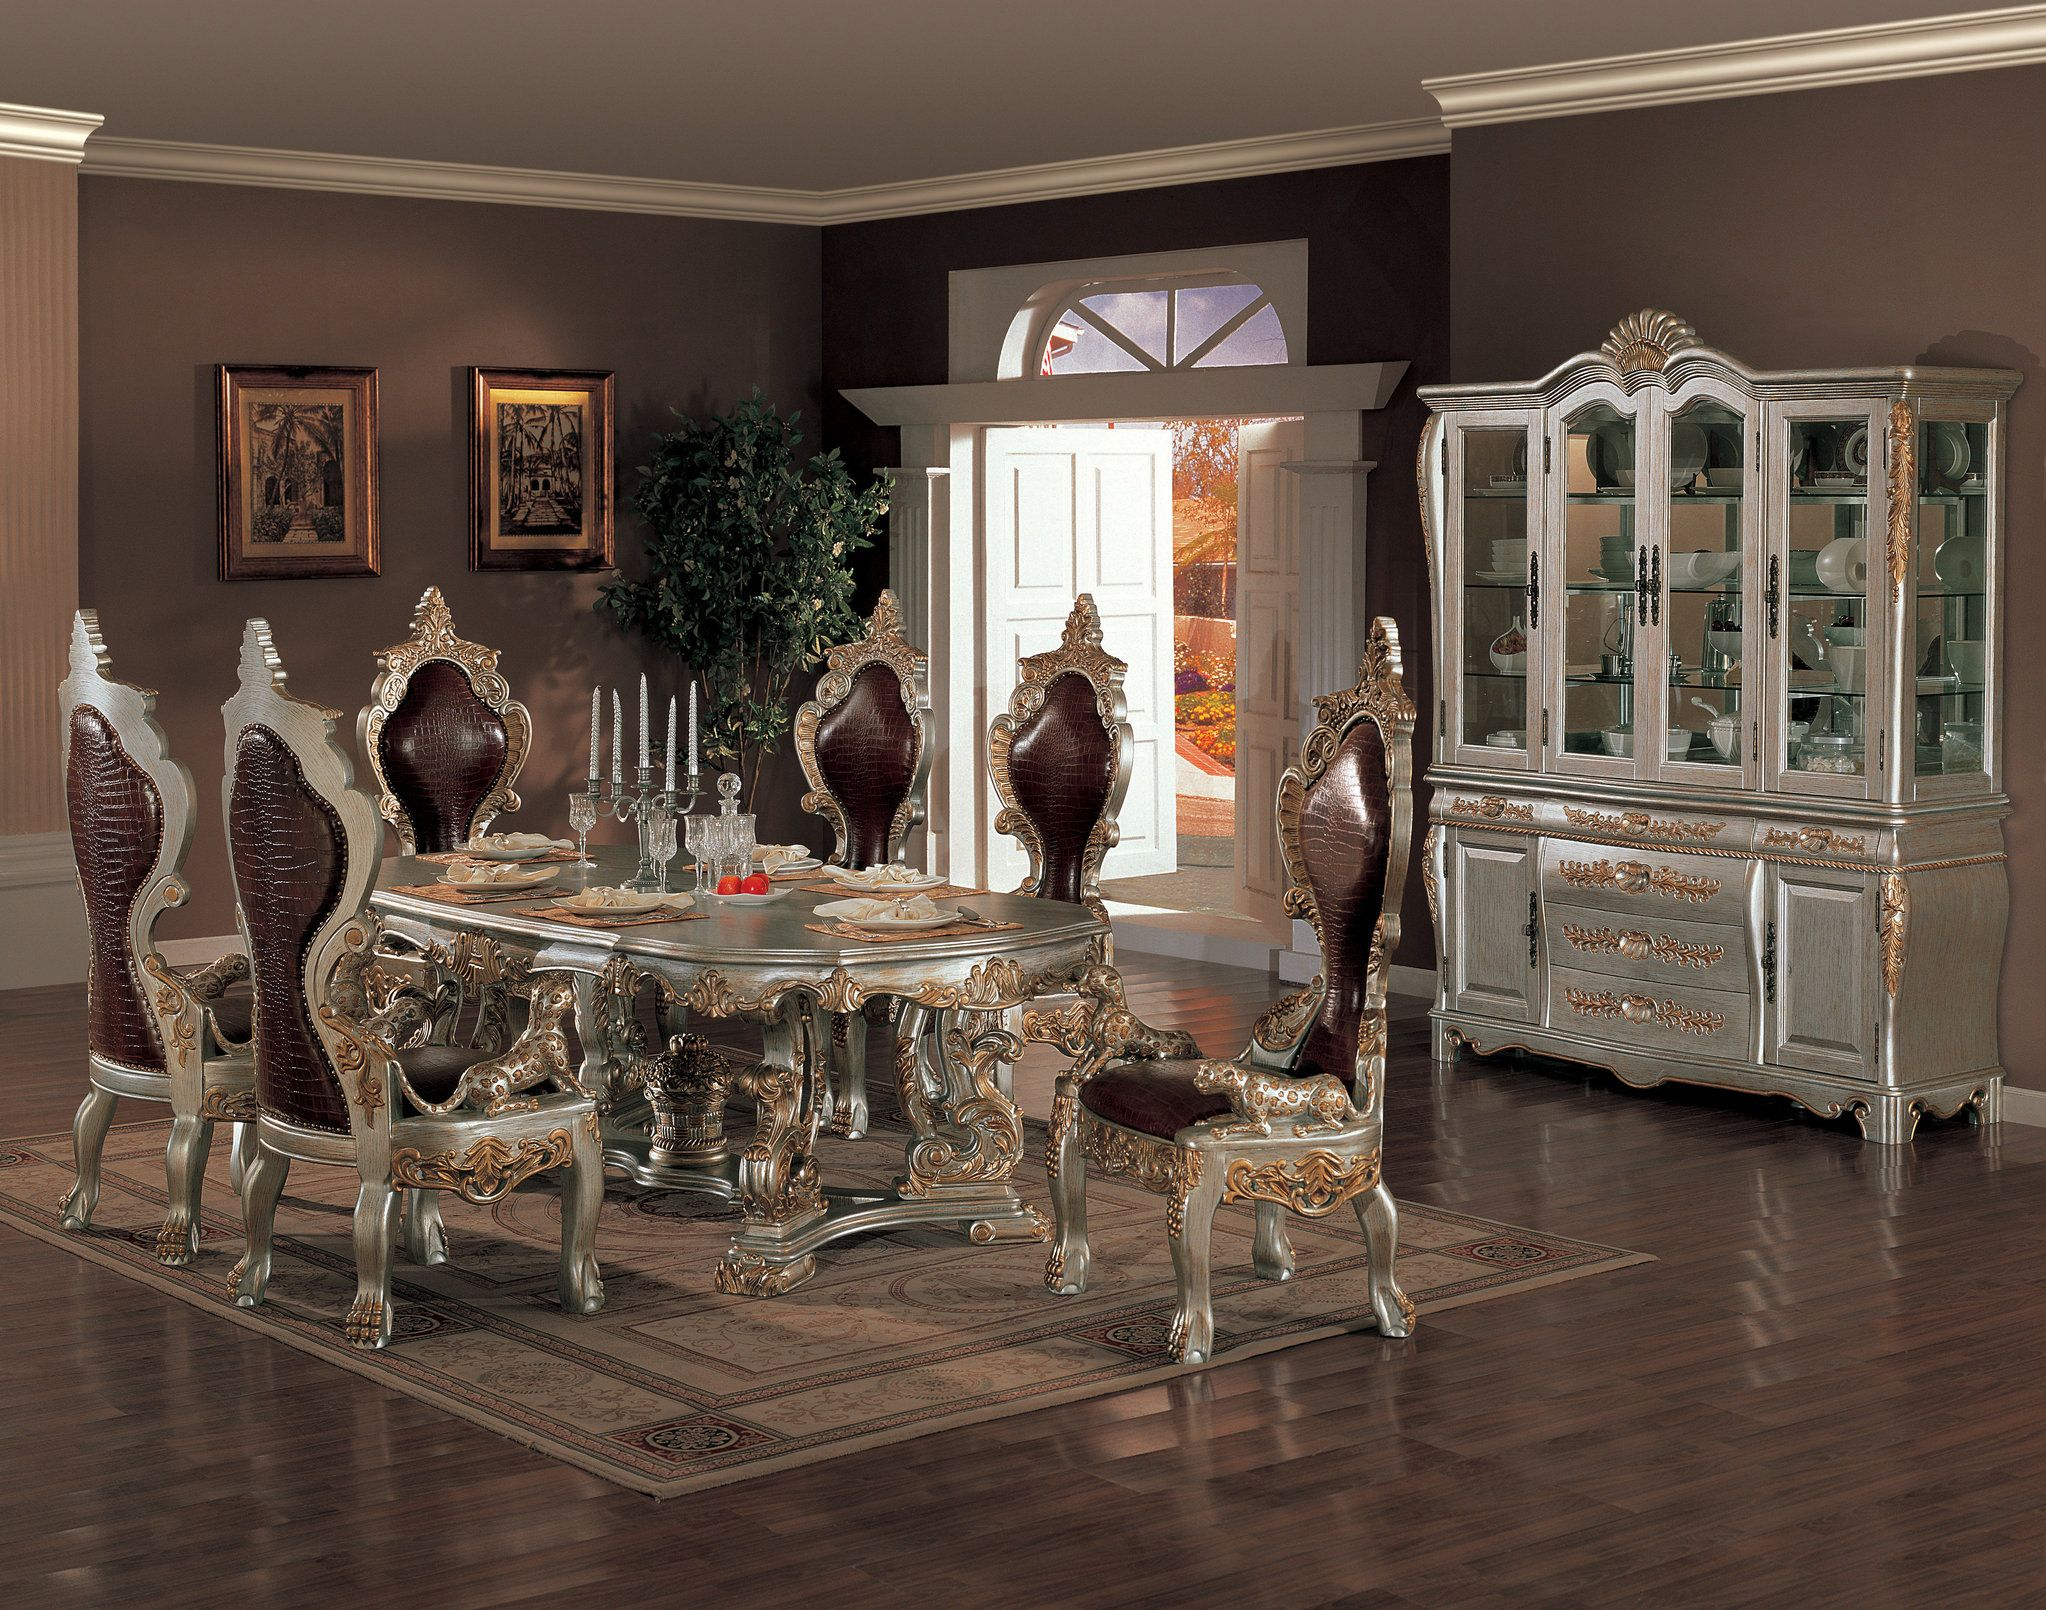 Dining Room With Buffet Table Elegant And Ornate Wood Set